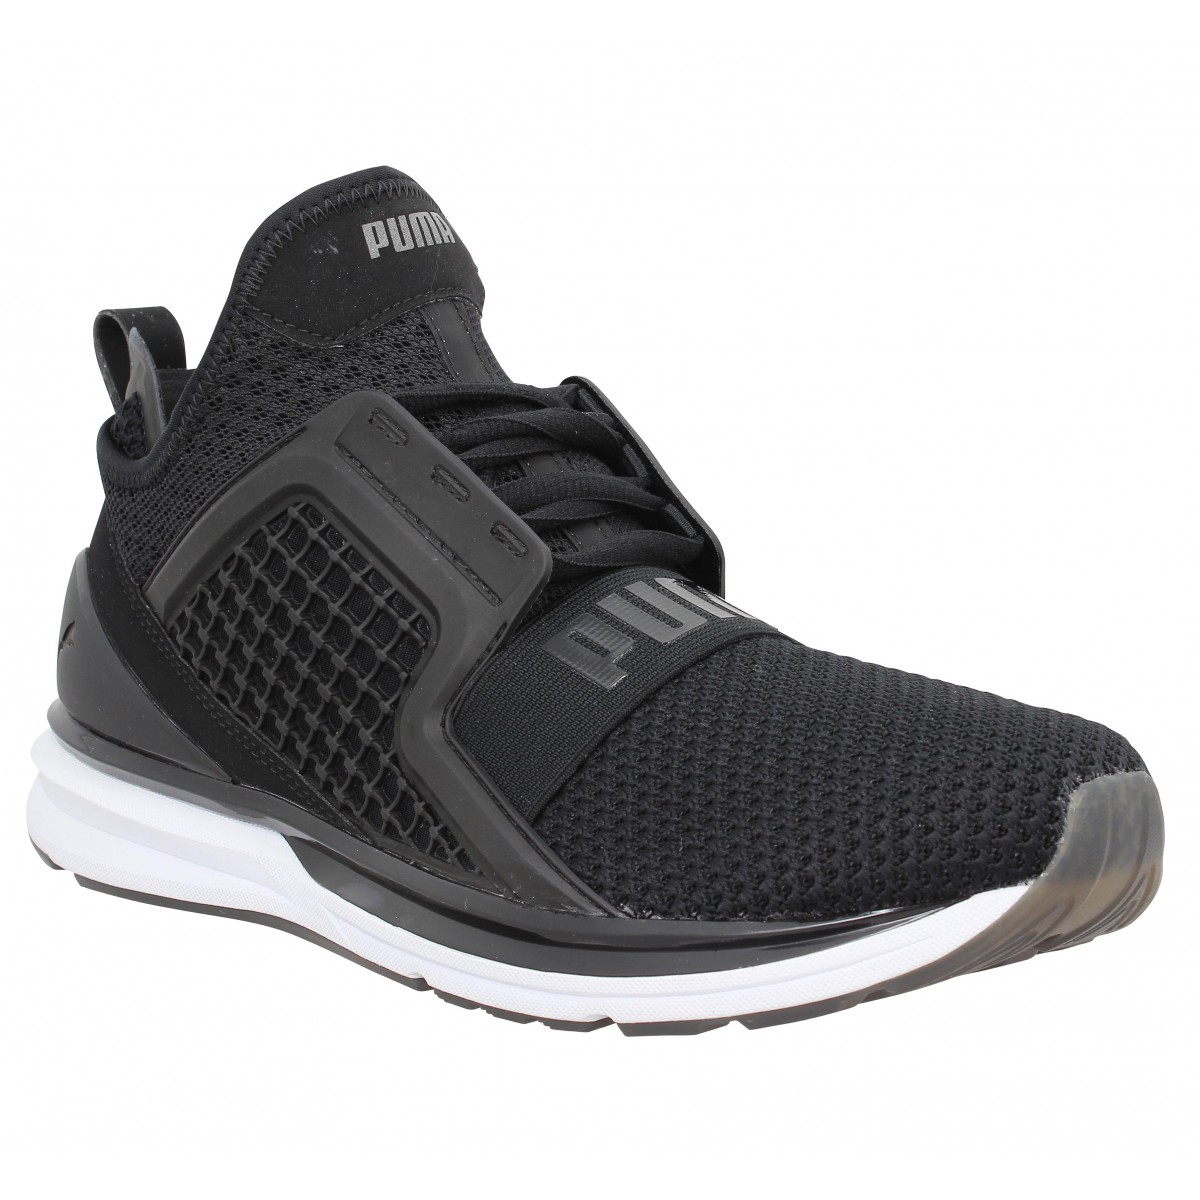 Puma Homme Ignite Limitless Weave Toile...